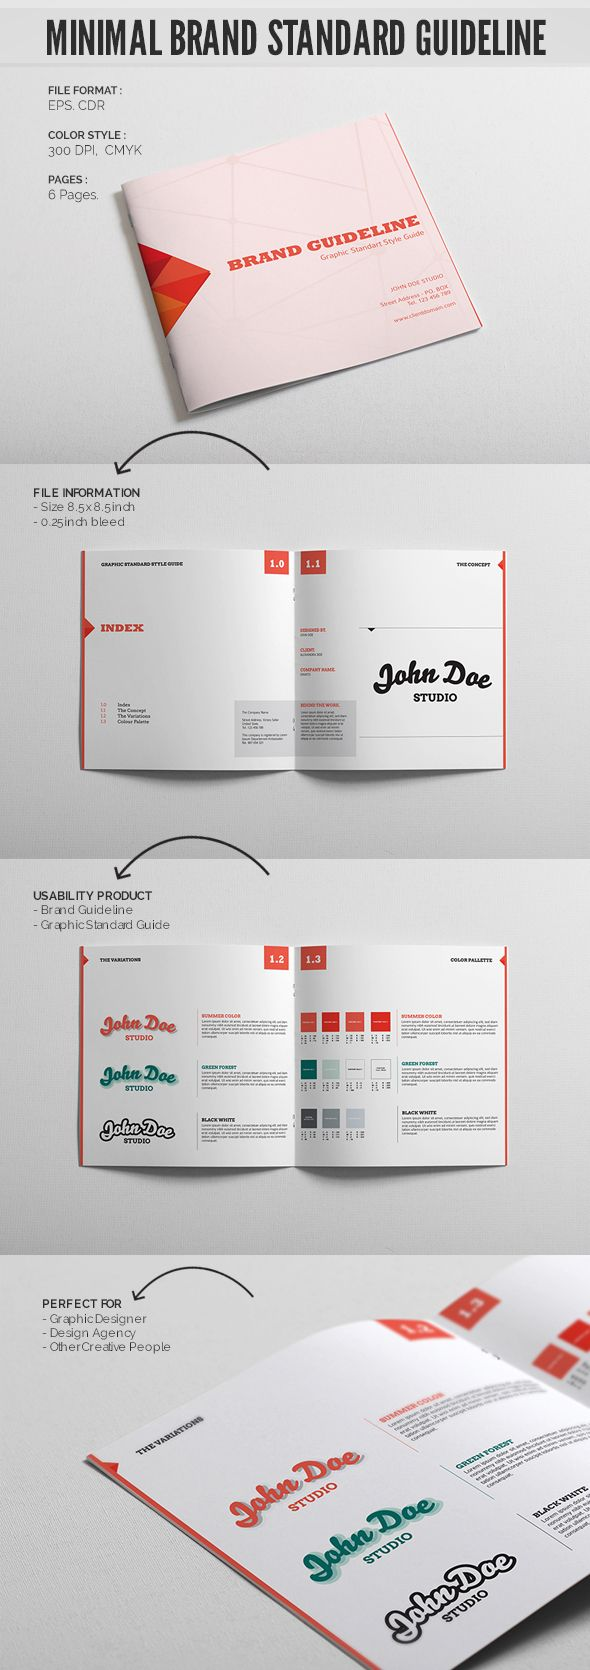 Guide Templates 35 Best Styles Guide Images On Pinterest  Brand Design Branding .